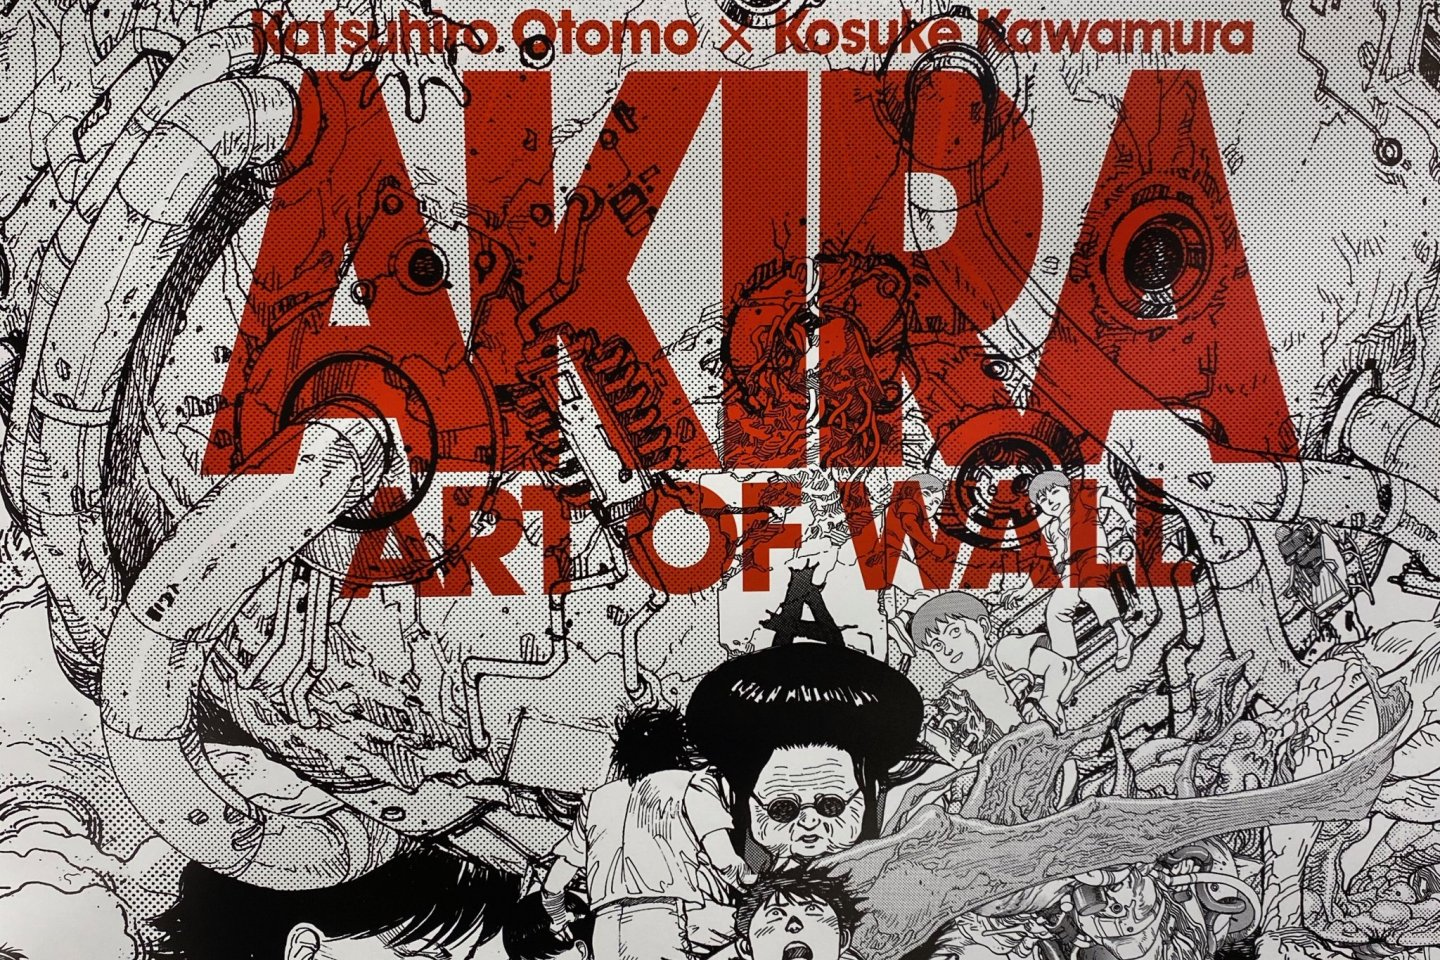 The Parco Museum exhibit is a tribute to the manga \'Akira\'